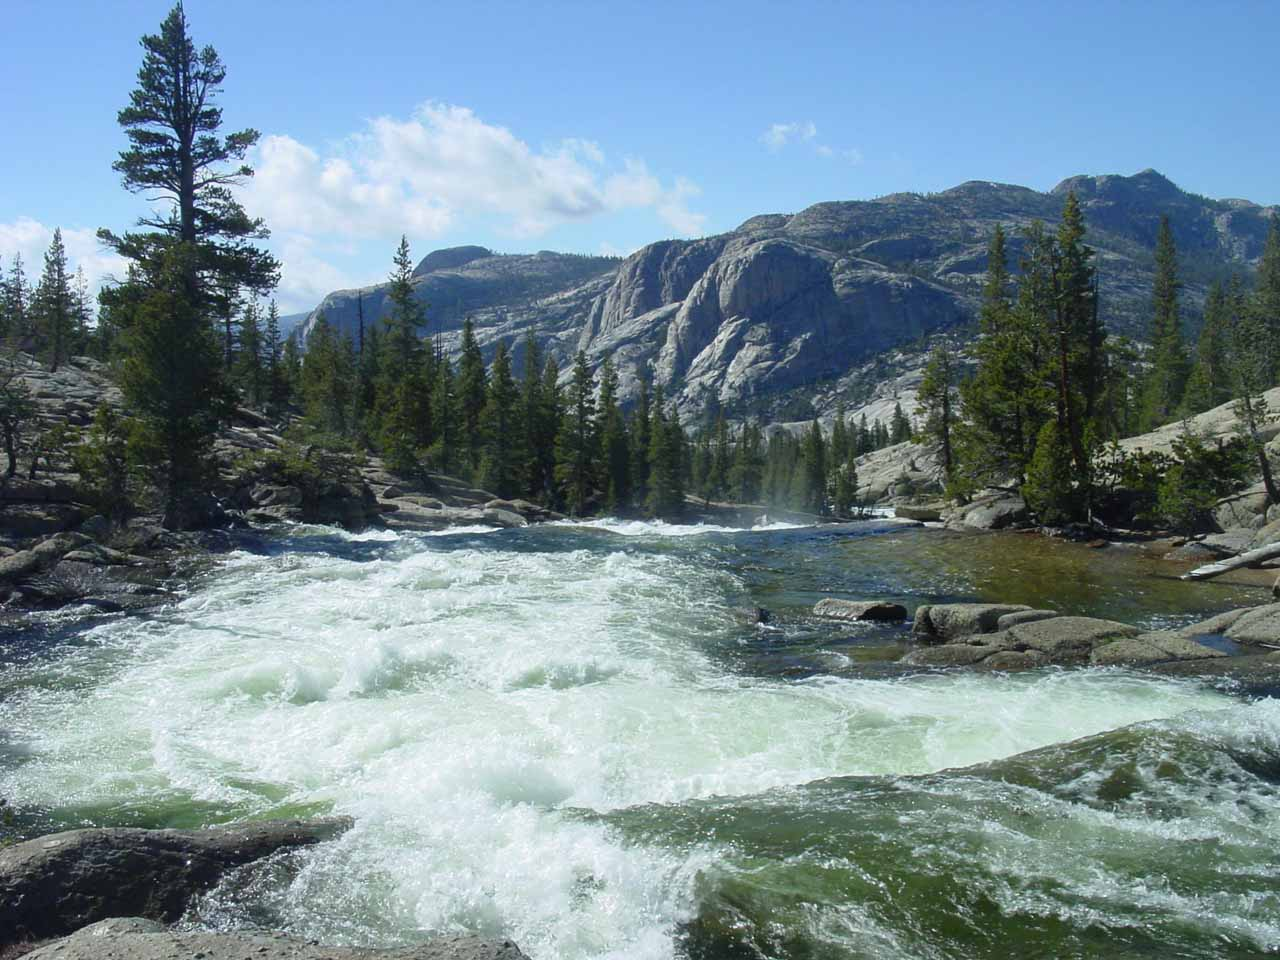 Looking downstream on the Tuolumne River as we crossed it over the footbridge